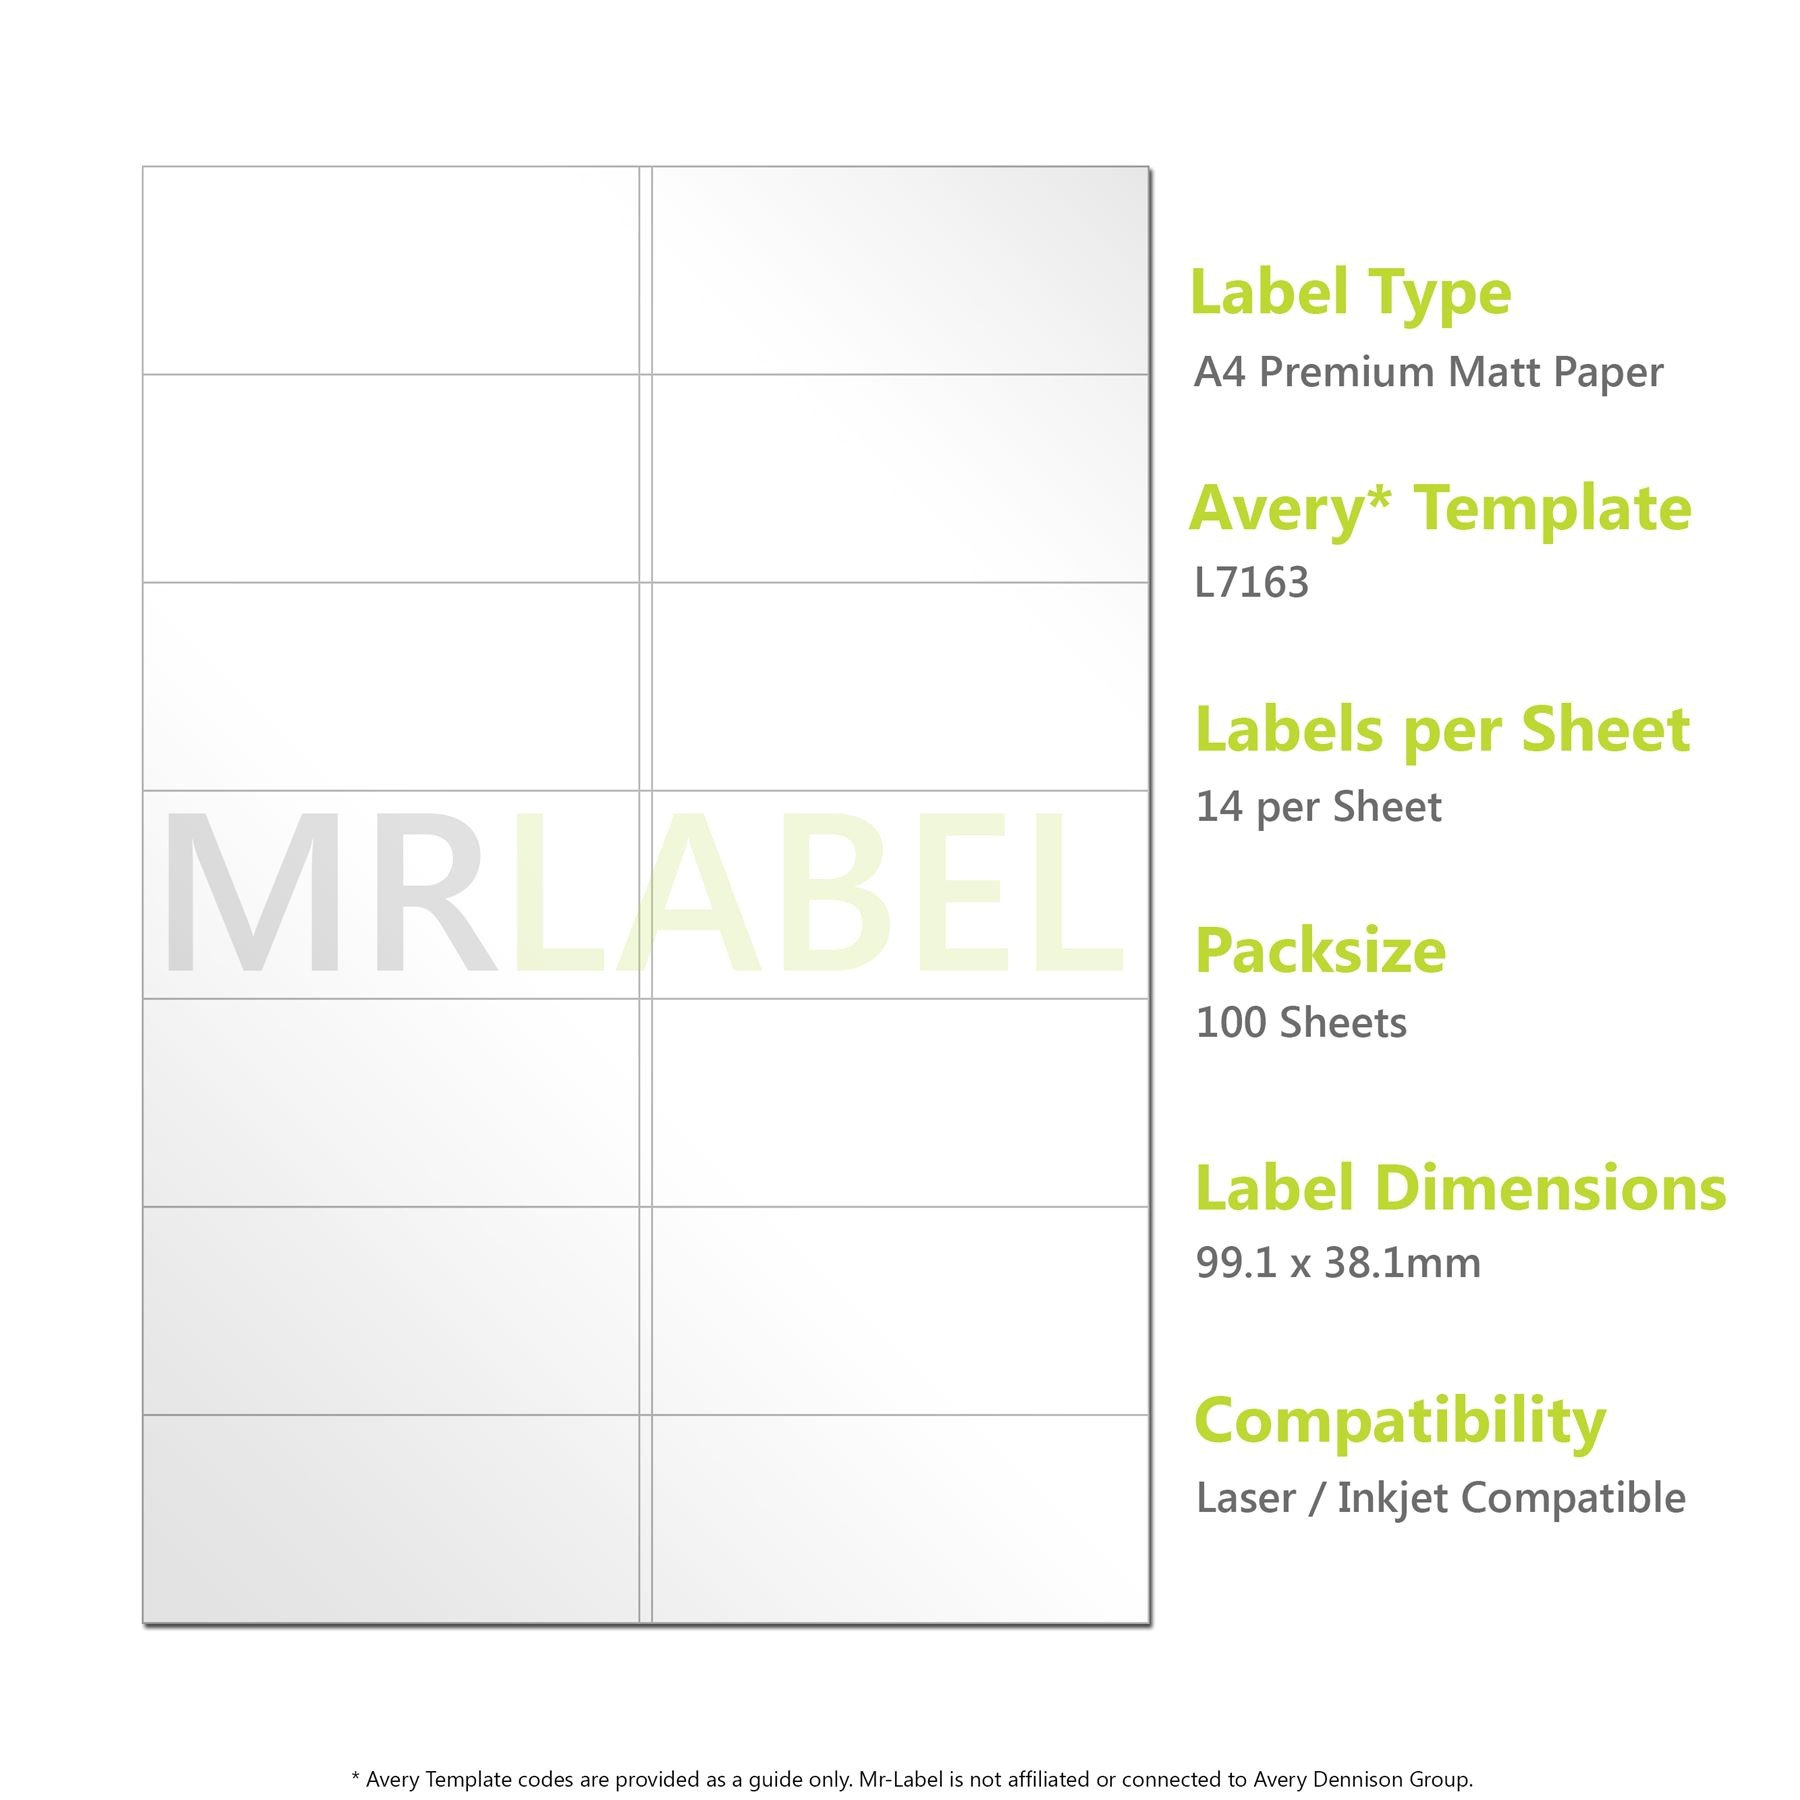 Avery Template 8 Per Page Avery Compatible A4 Self Adhesive Labels L7163 J8163 14